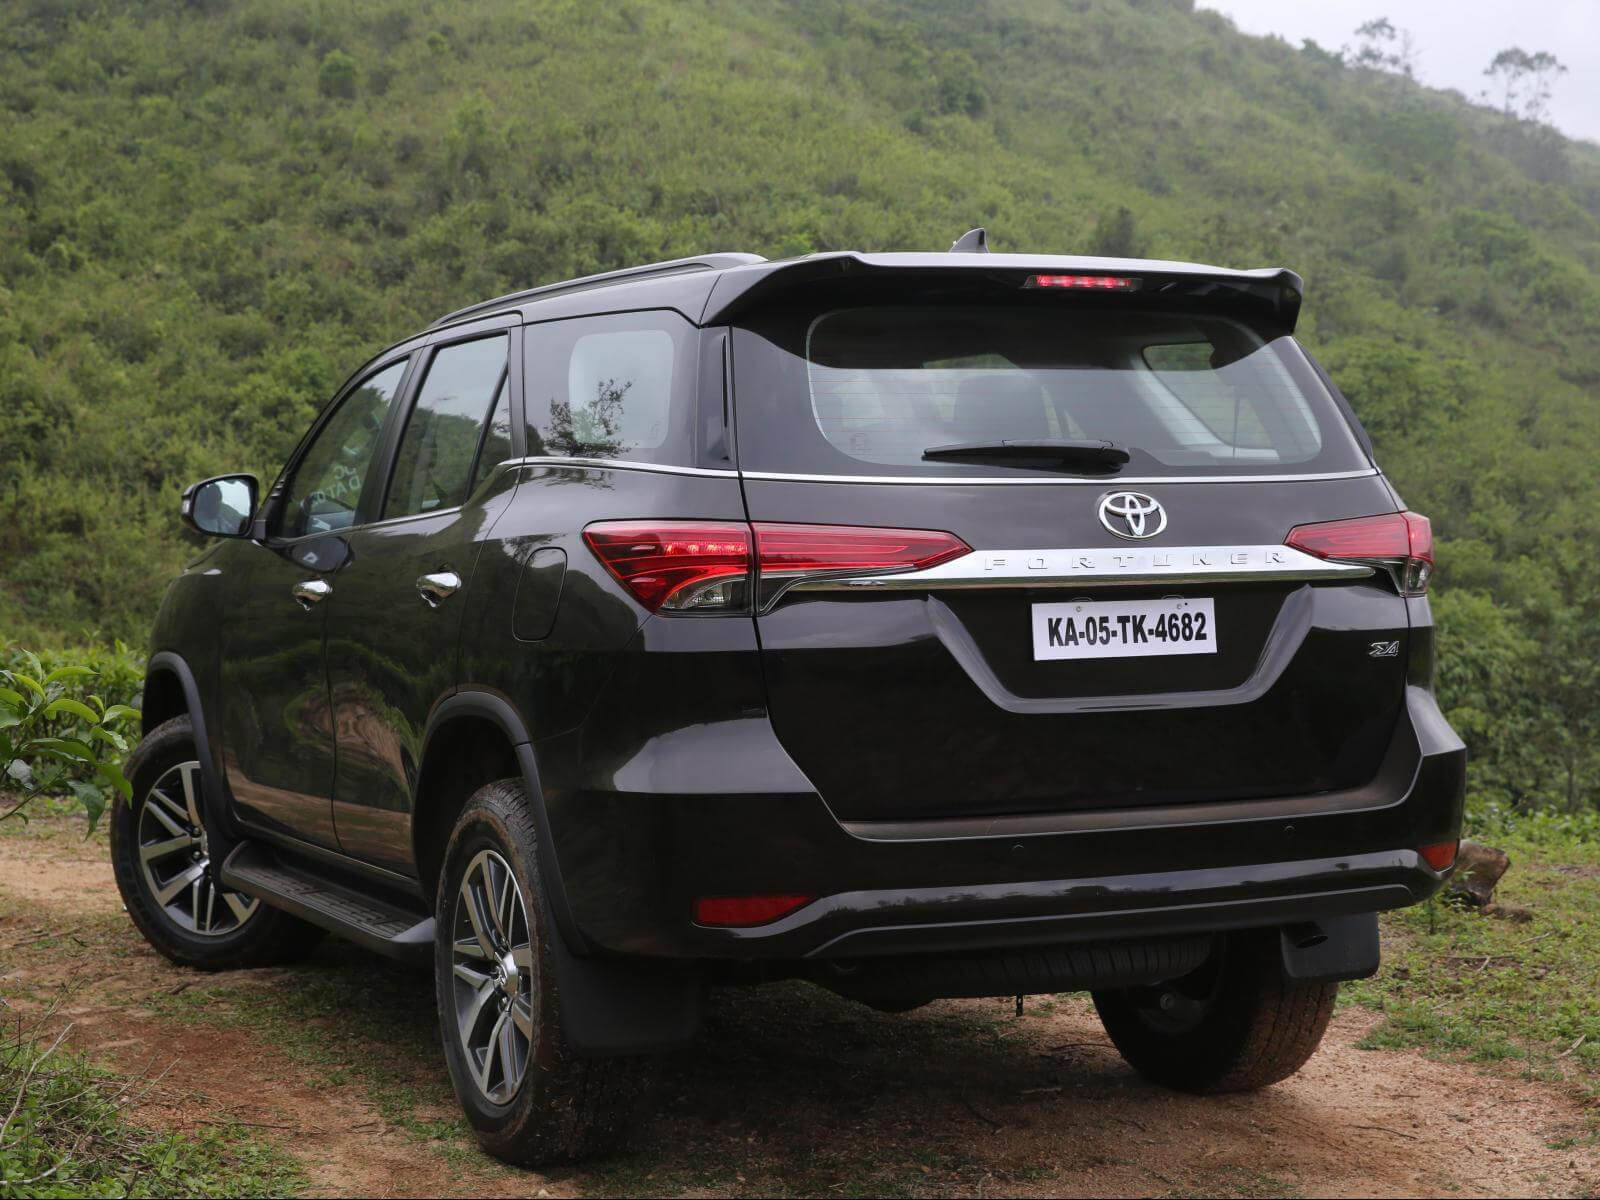 New Car Wallpaper Toyota Fortuner Car Hd Wallpaper On This Month